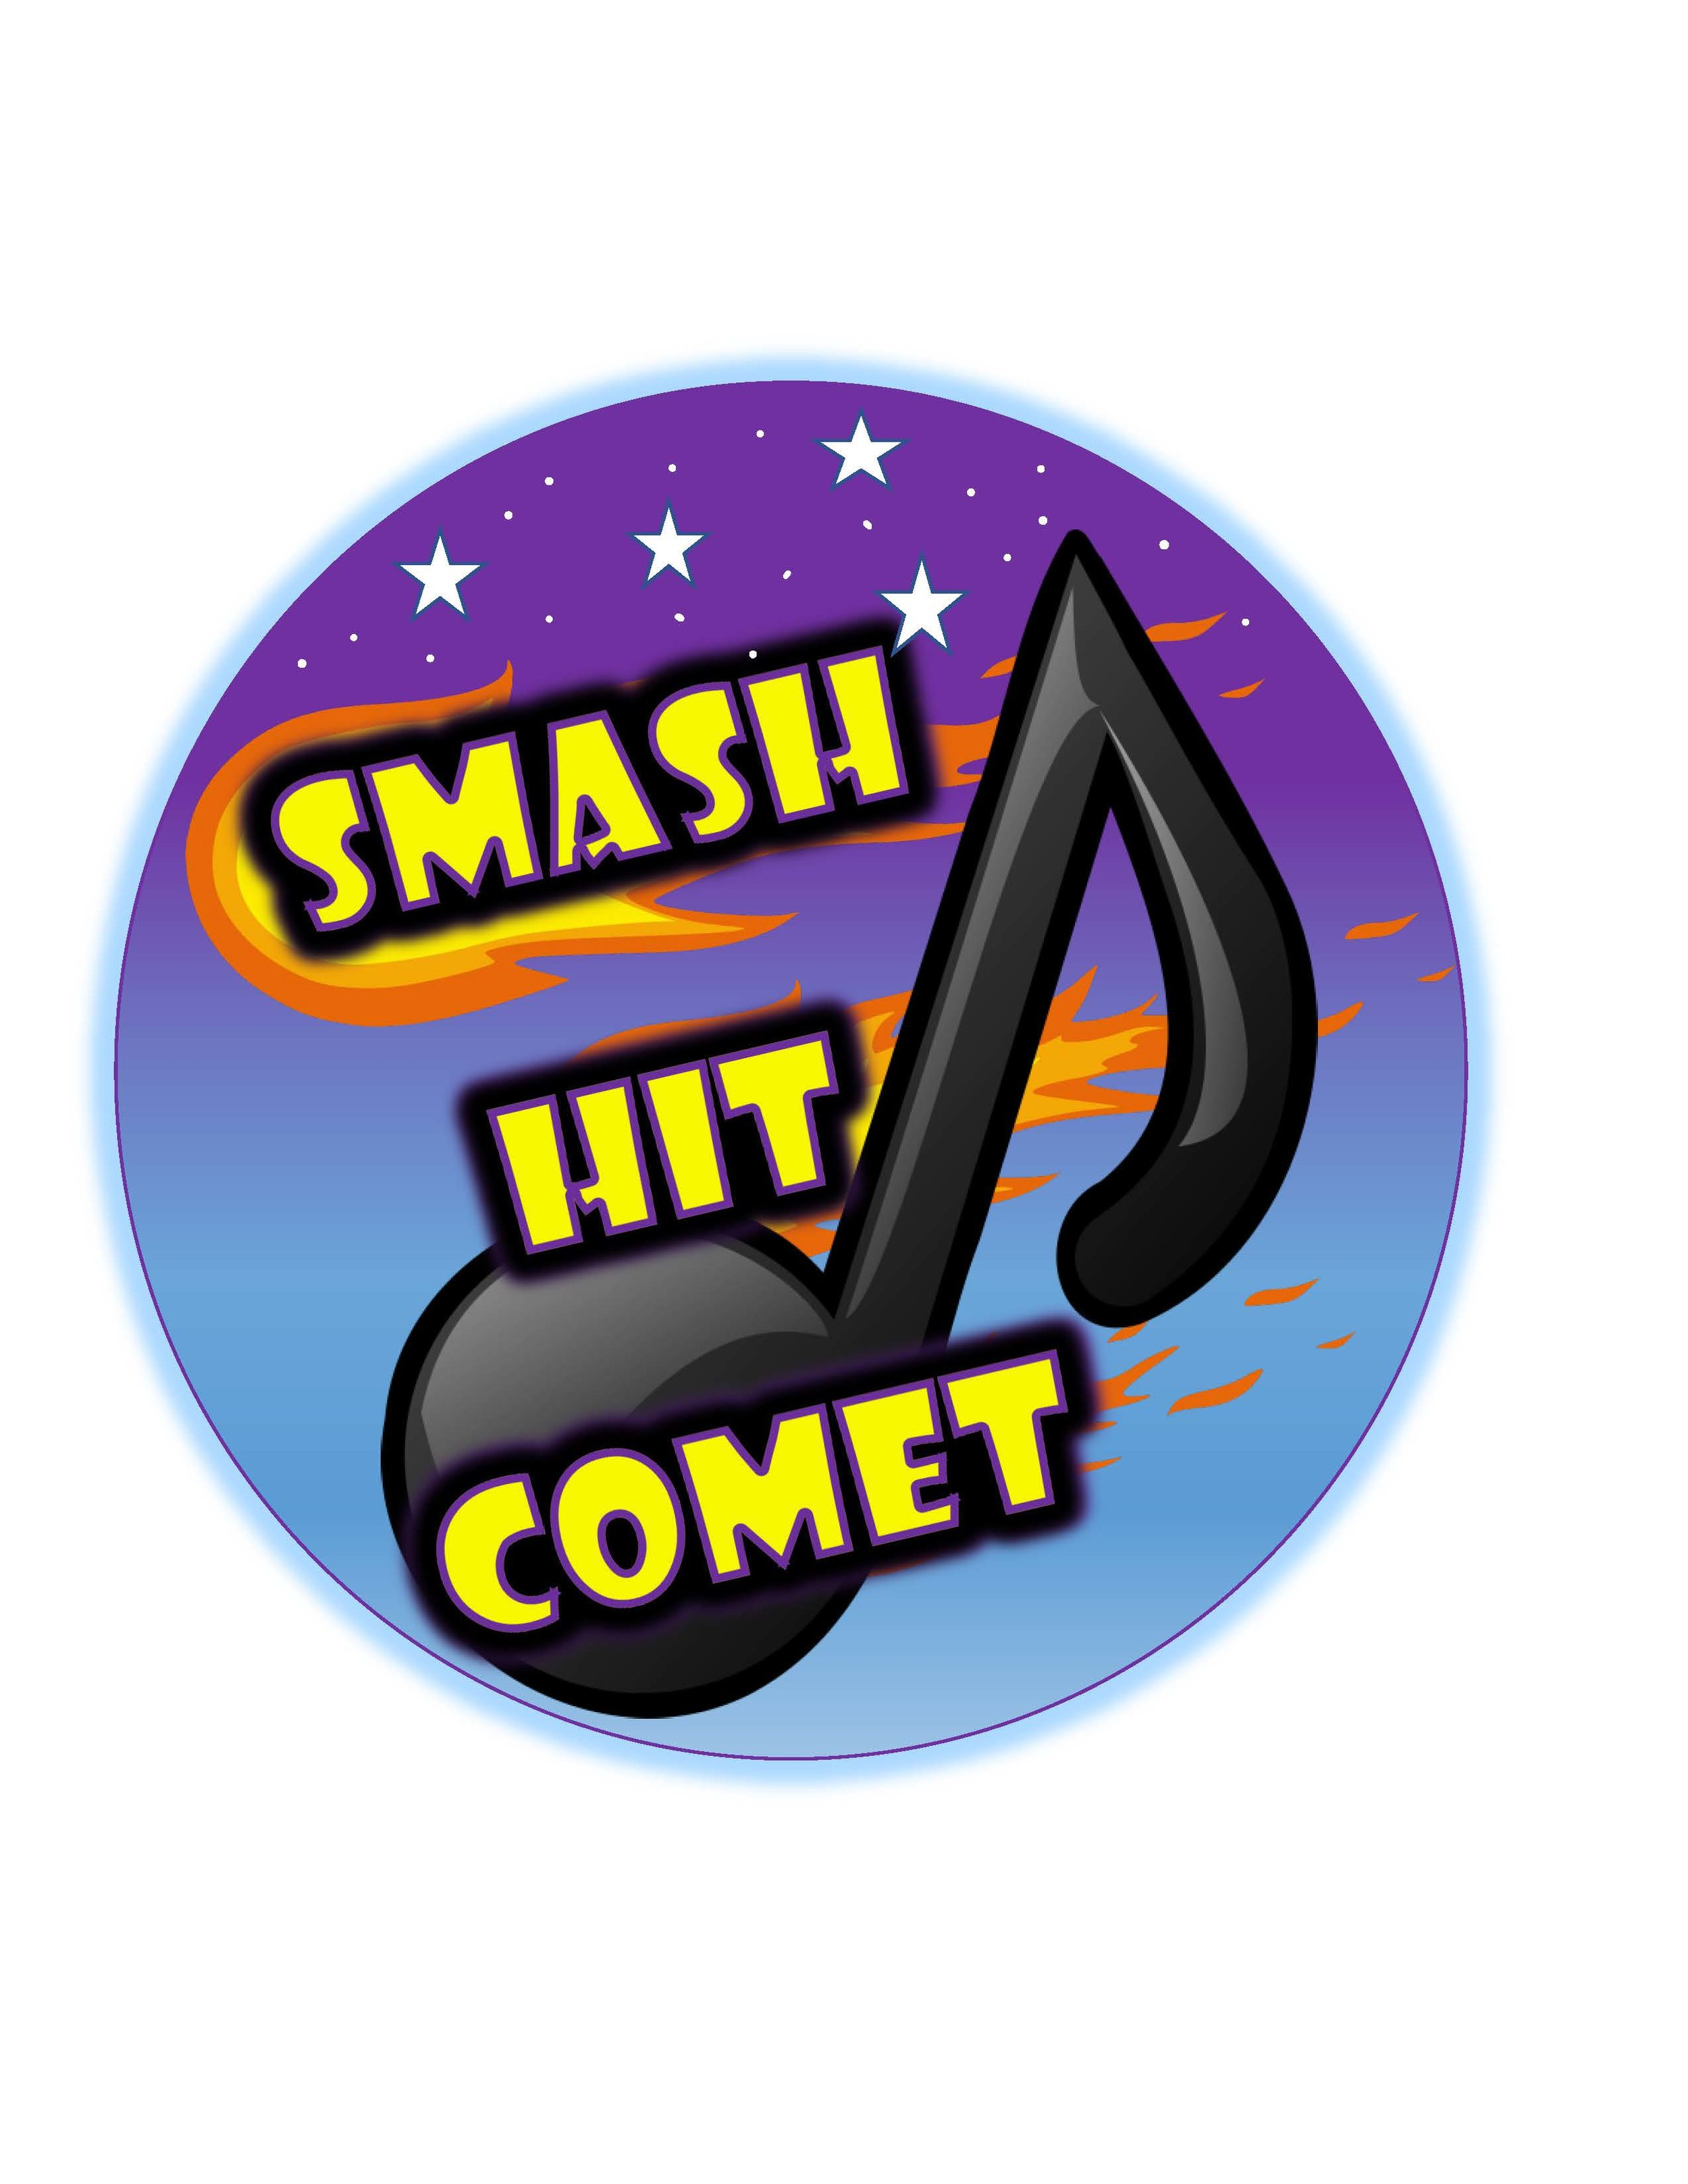 Smash Hit Comet Label.jpg